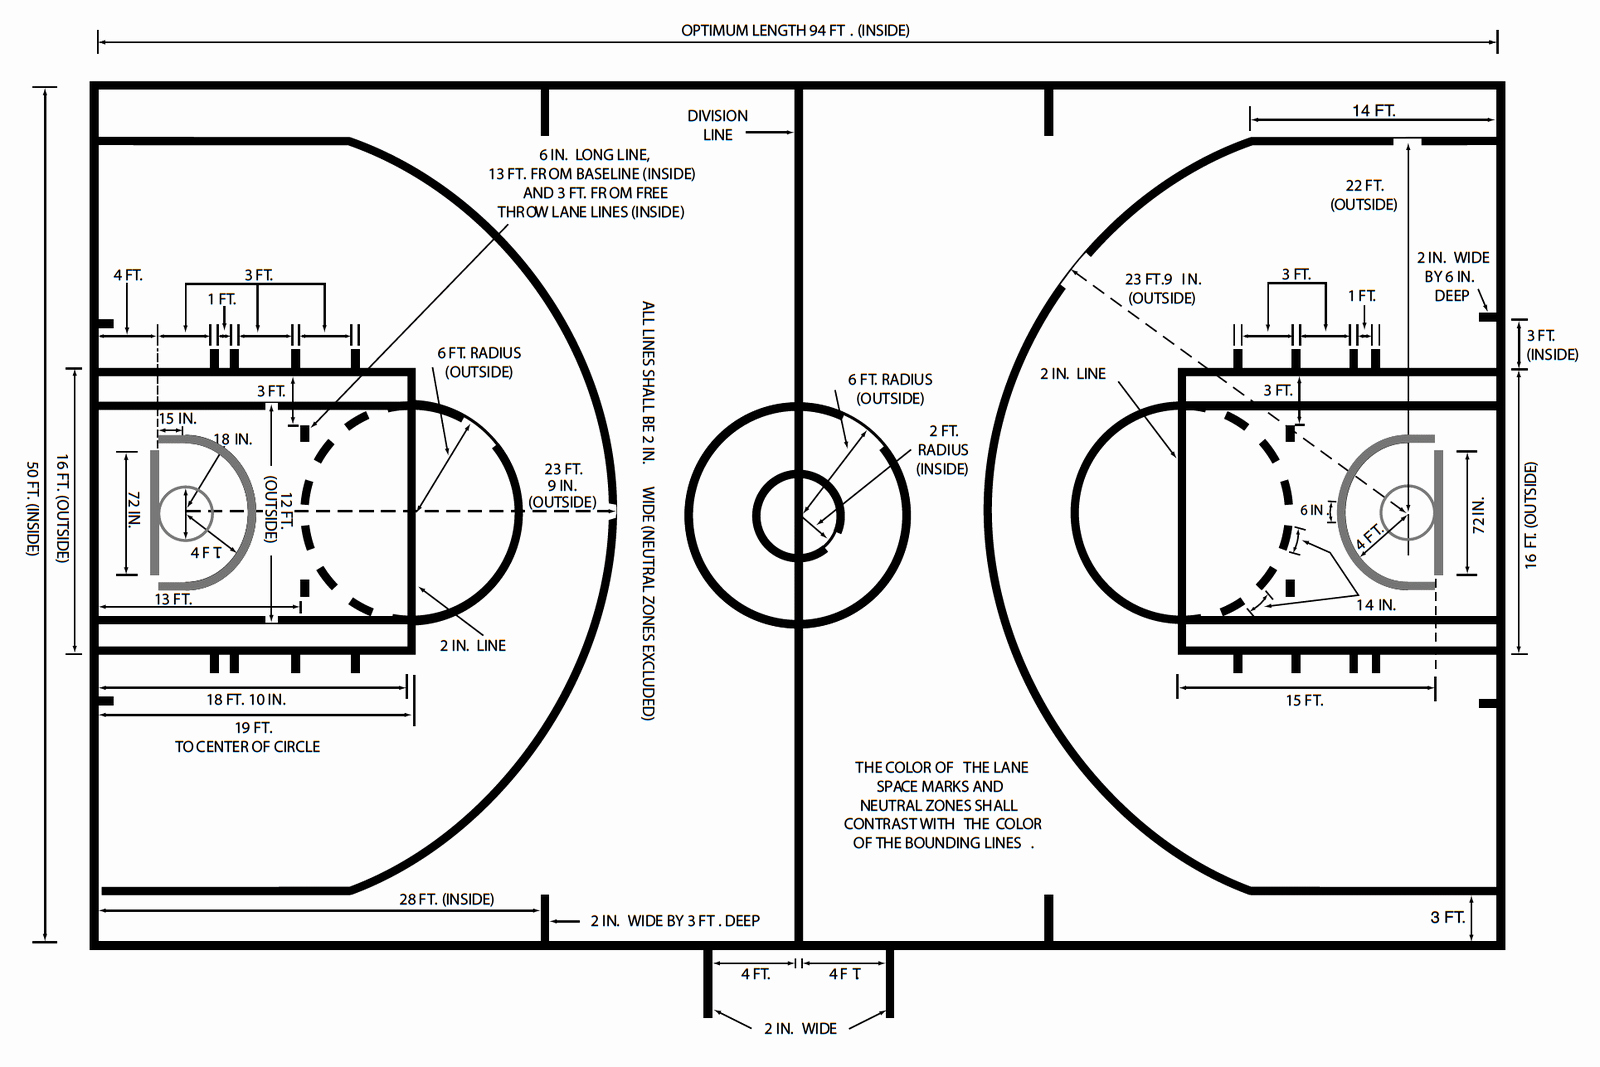 Youth Basketball Court Dimensions Diagram Inspirational Basketball Court Dimensions & Measurements